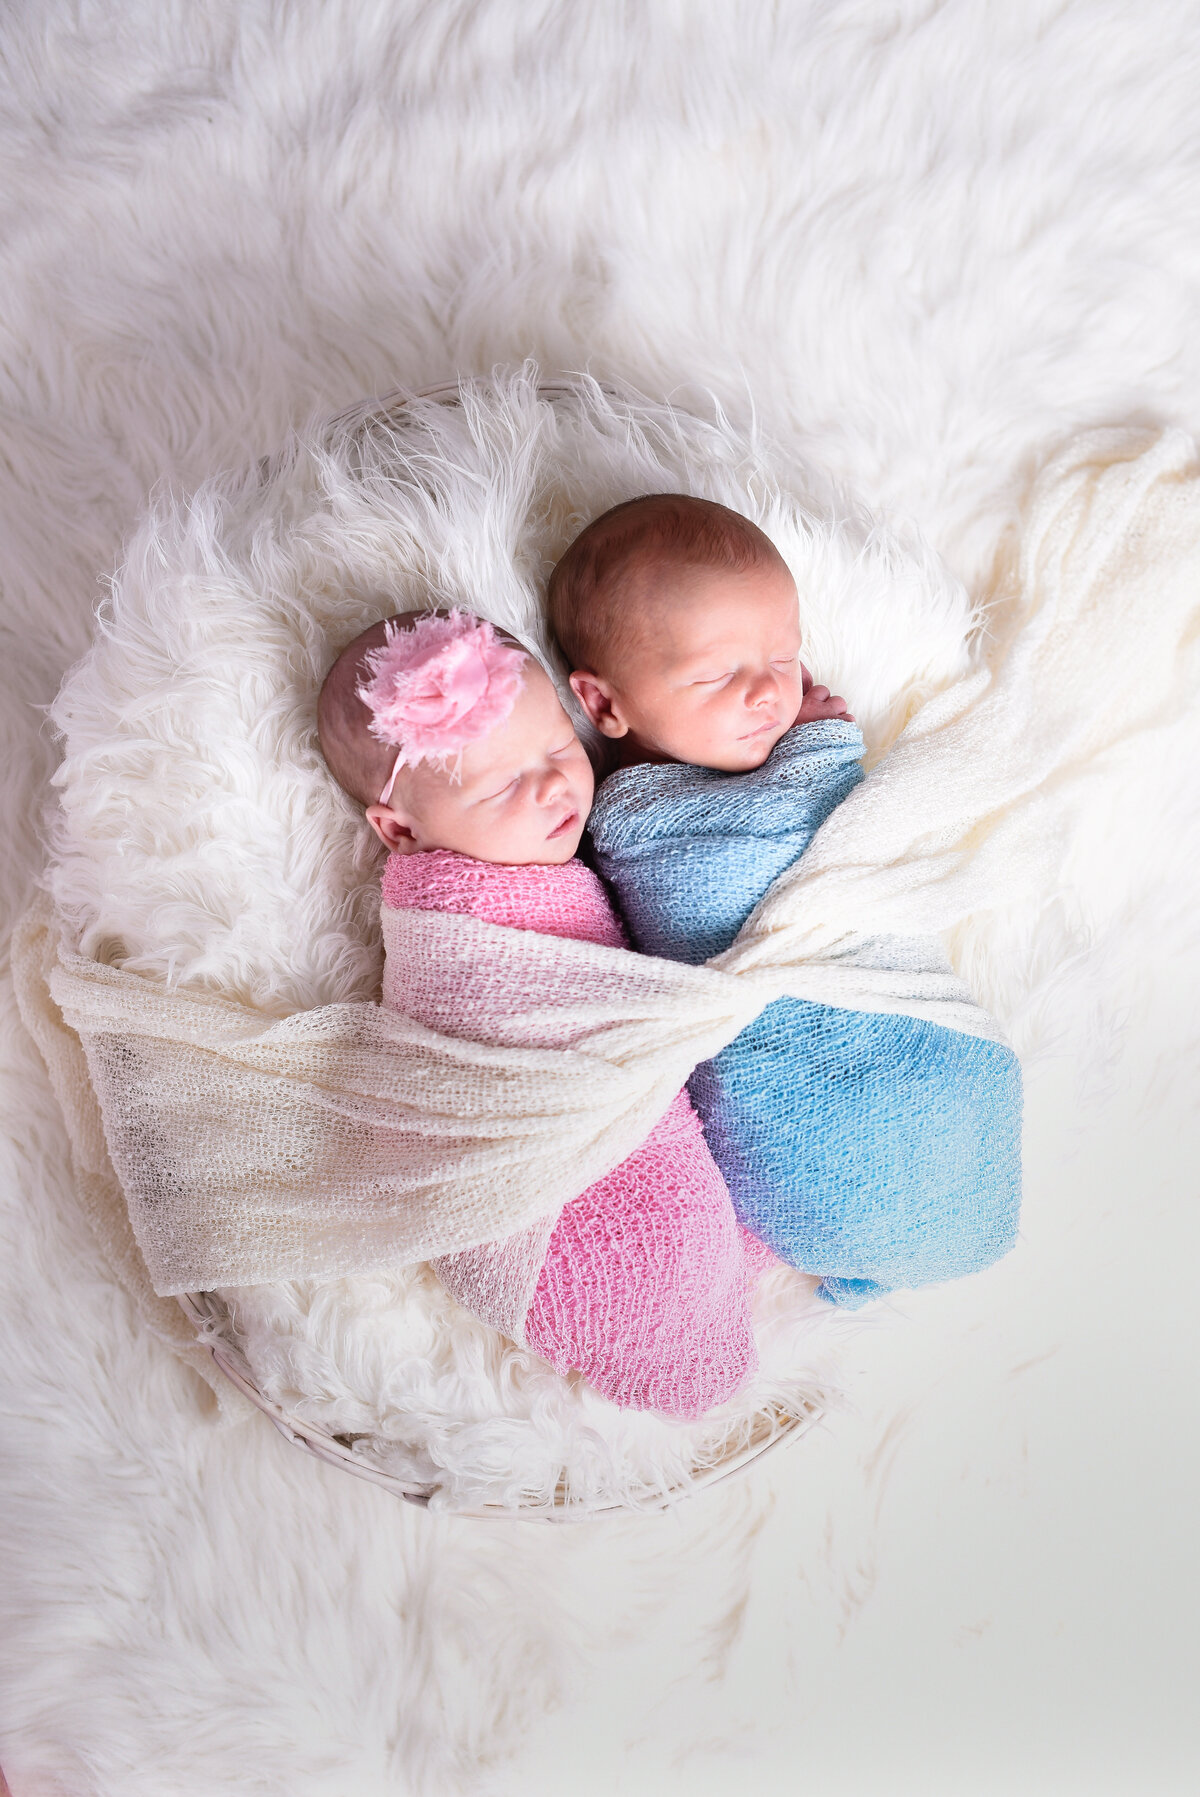 Beautiful Mississippi newborn photography: Twin newborns wrapped in pink and blue